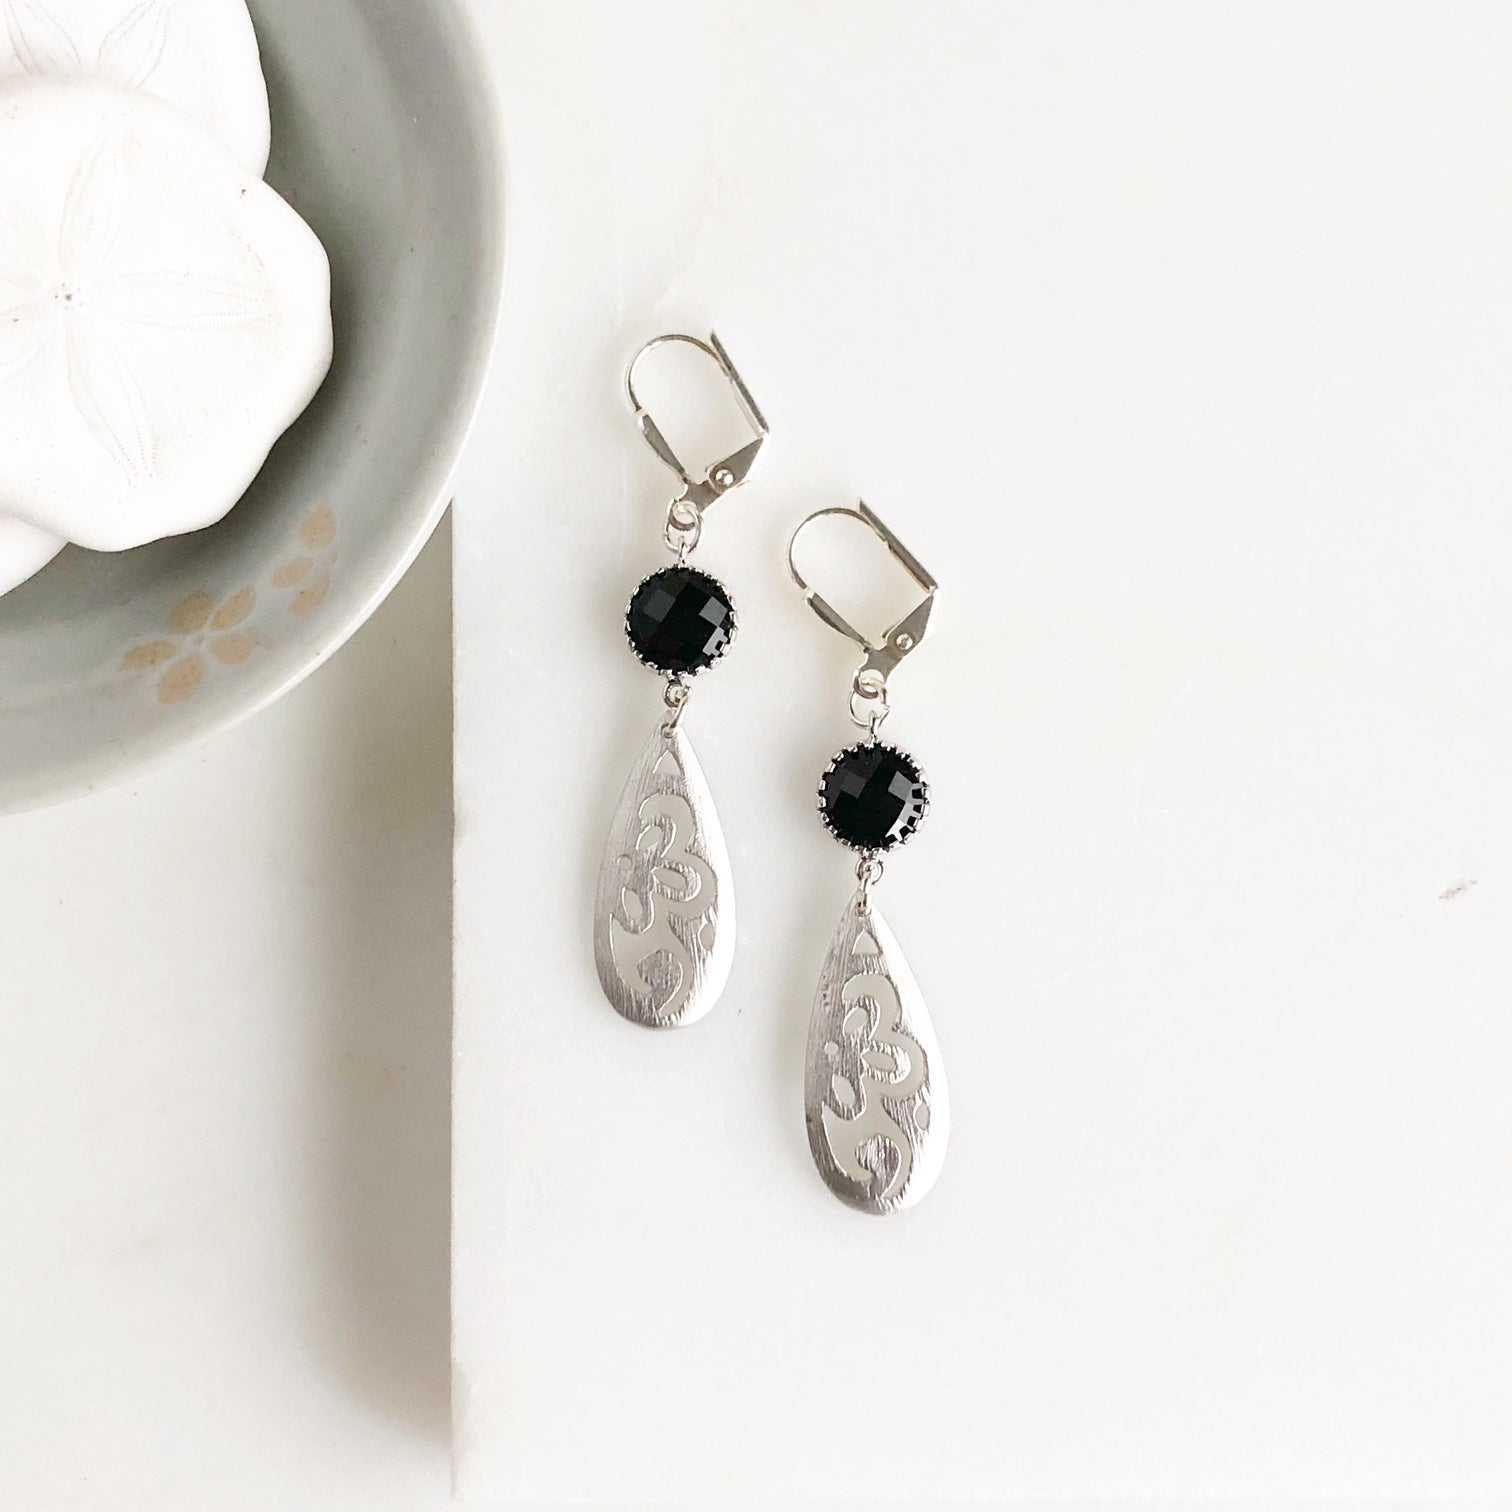 Sweet Black Stone and Silver Drop Earrings. Silver and Black Dangle Earrings. Jewelry Gift.